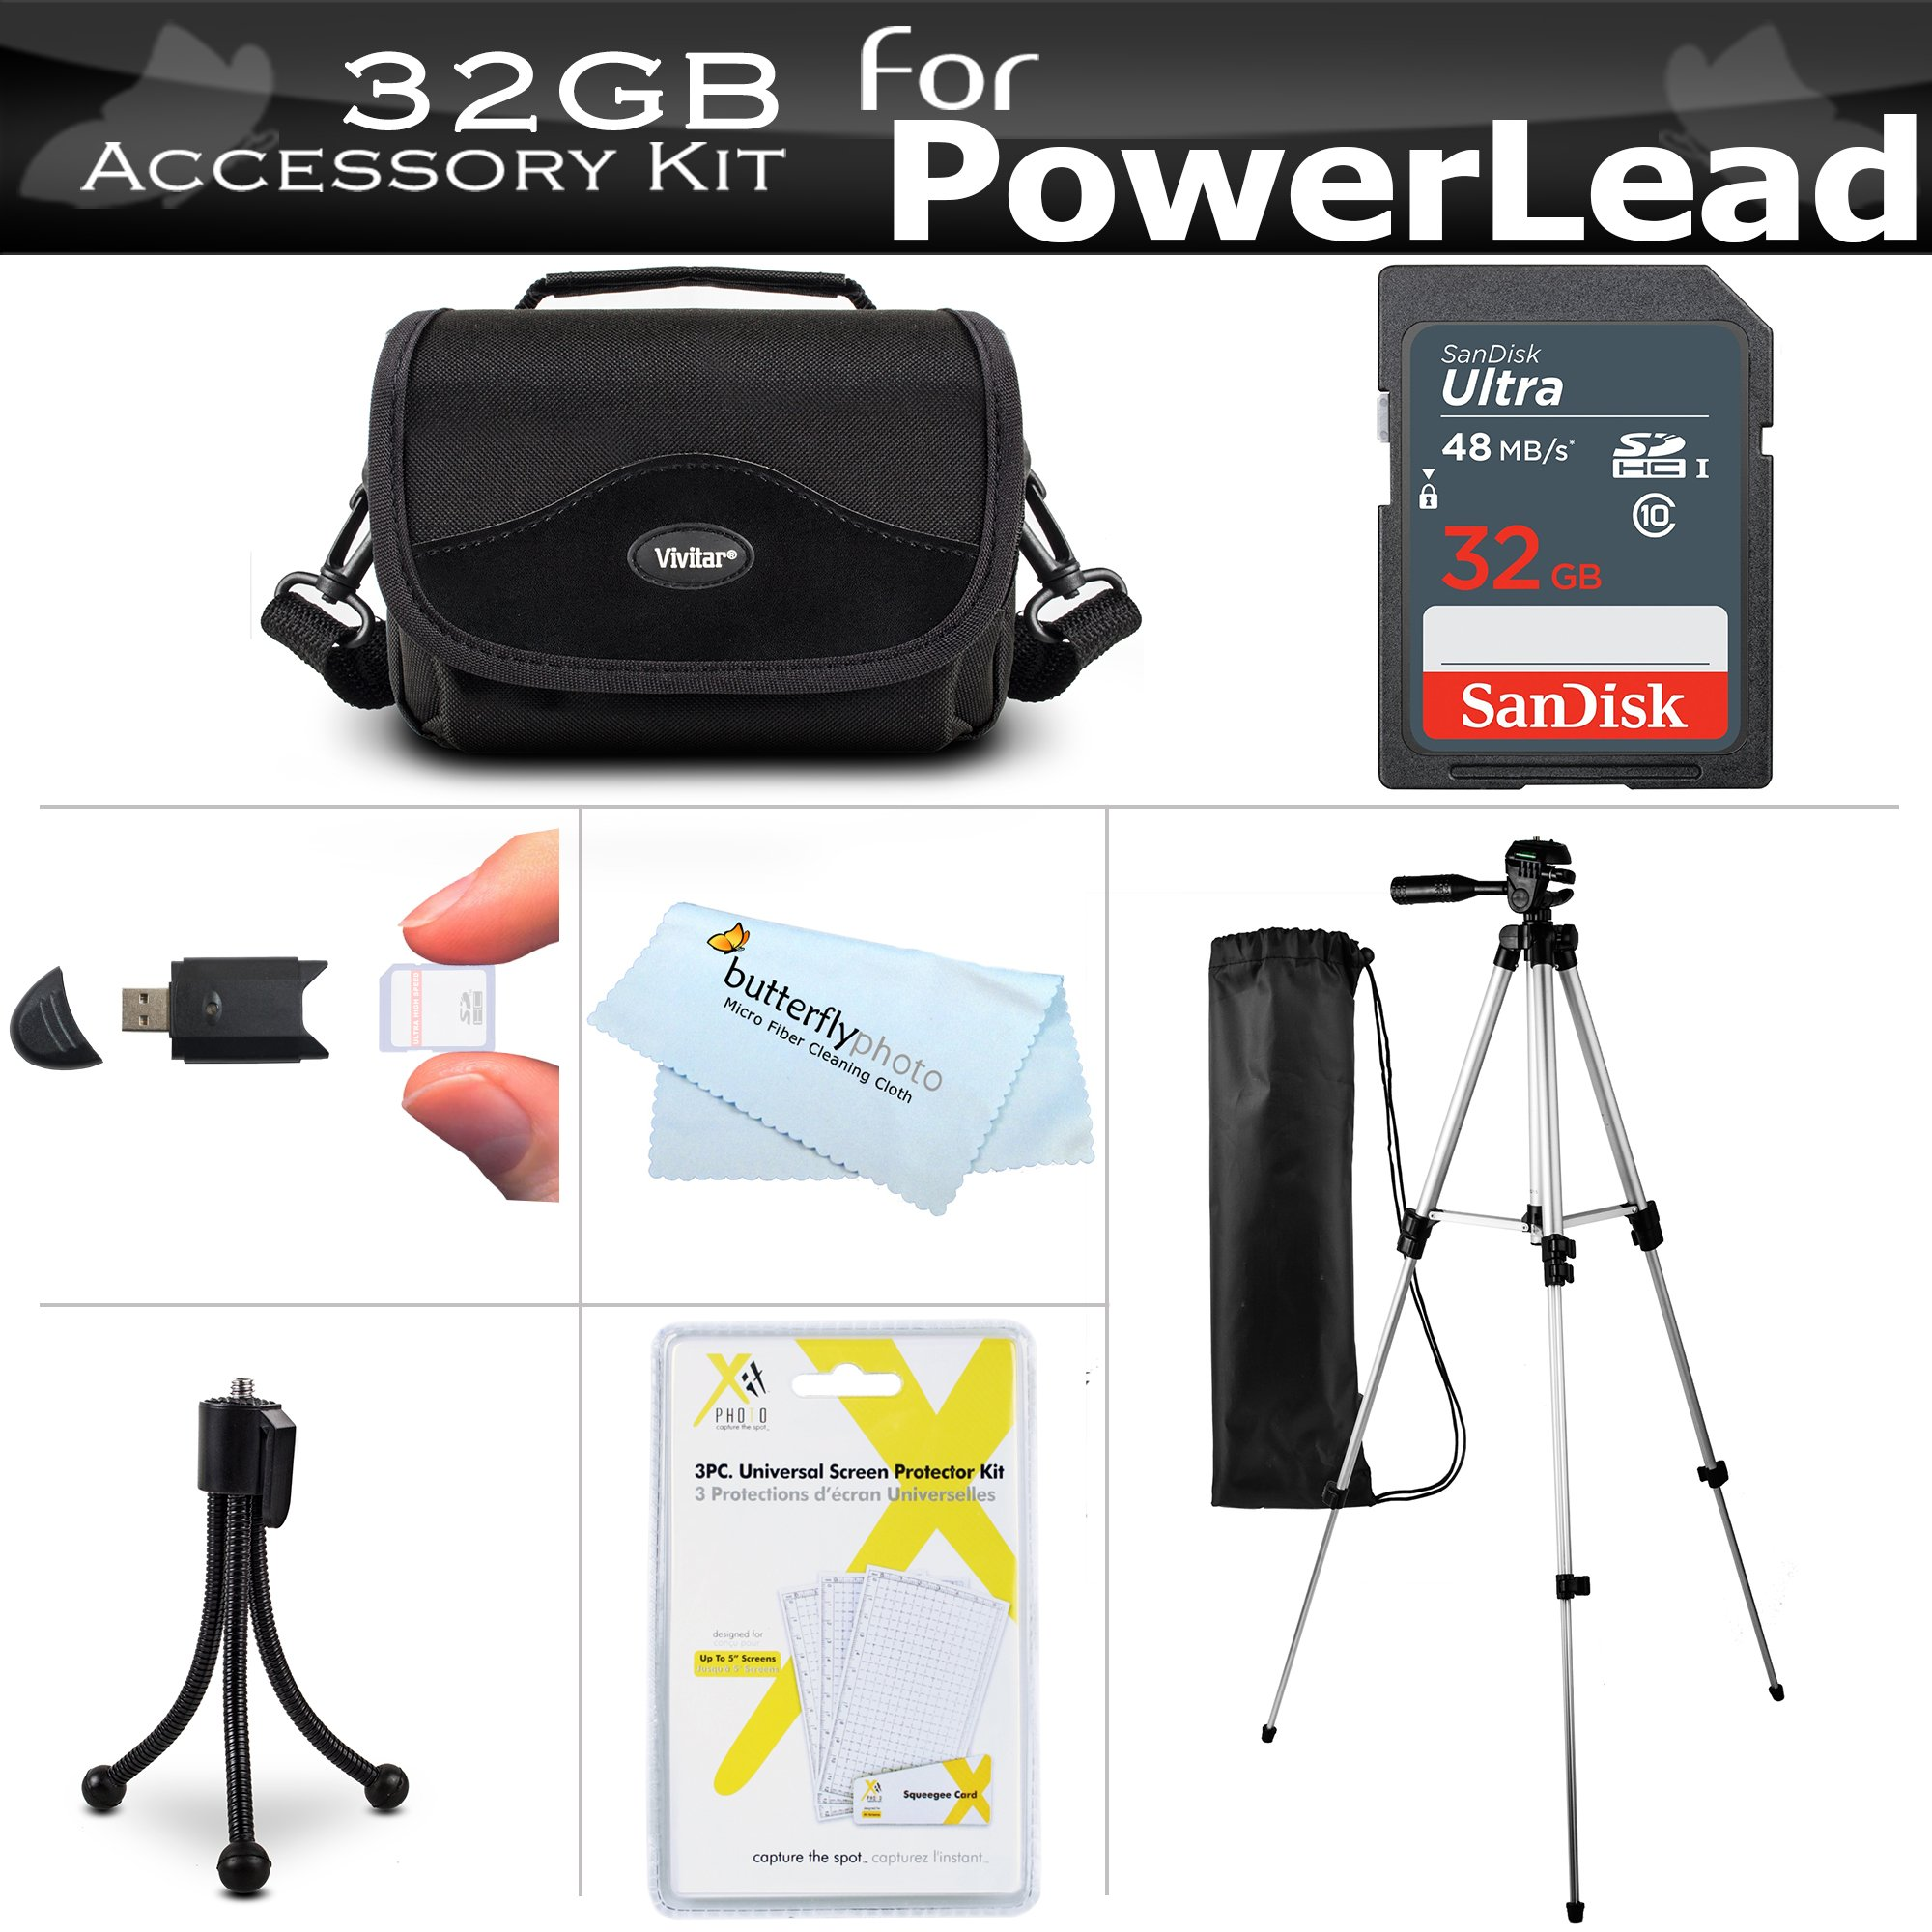 32GB Accessories Bundle Kit For PowerLead Puto PLD078, PLD009, PLD003, PLD010, PLD002, PLD001, PL301, CAM06, PL-C05, Dcam PL-C10, Dcam PL-C20, Besteker Camcorder Includes 32GB SD Card + Case + Tripod